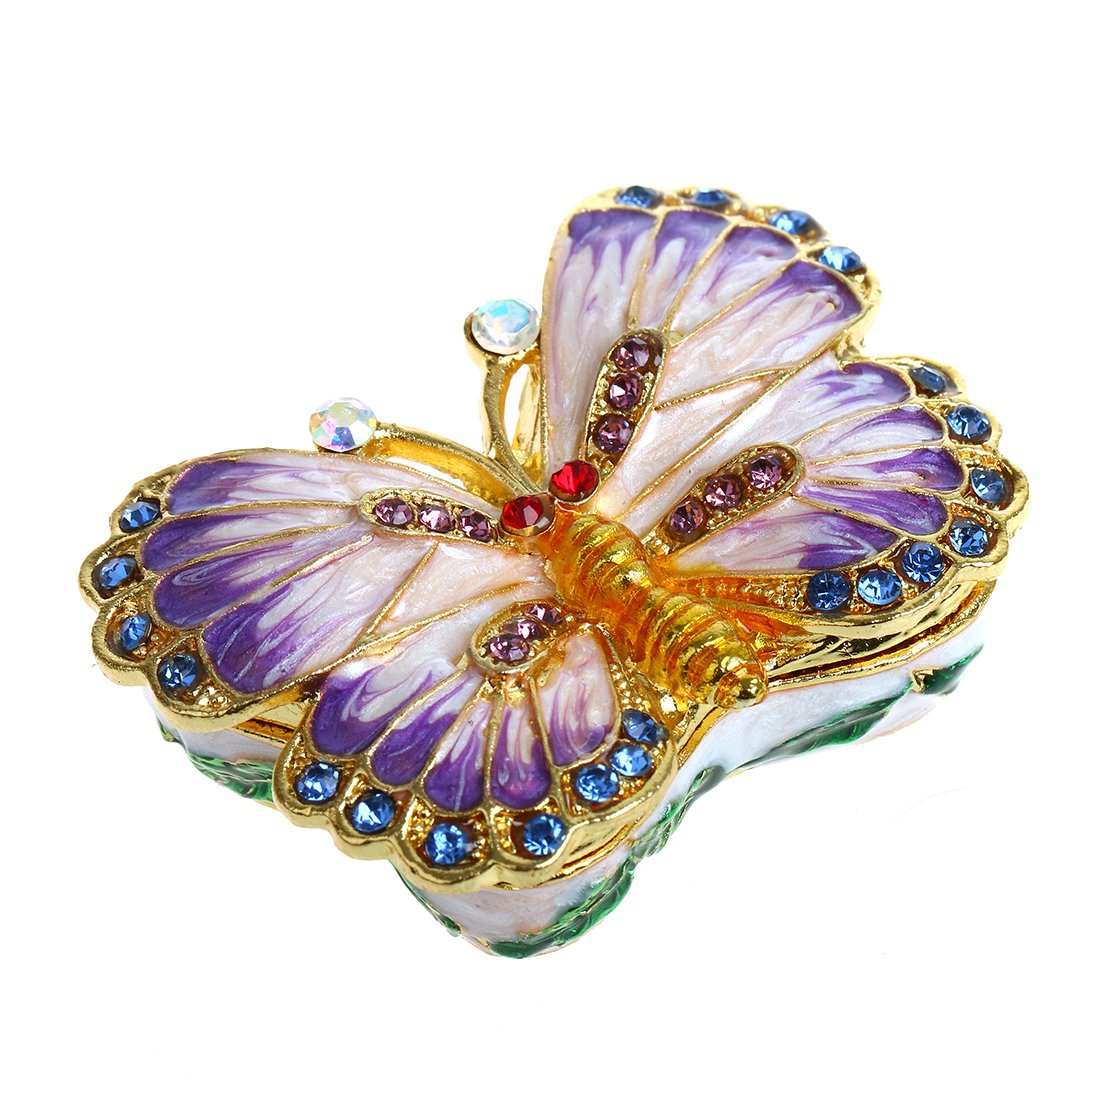 YUFENG Butterfly Trinket Box Hinged Small Jewelry Bejeweled Trinket Boxes Figurine Collectible Gift (trinket box ii)